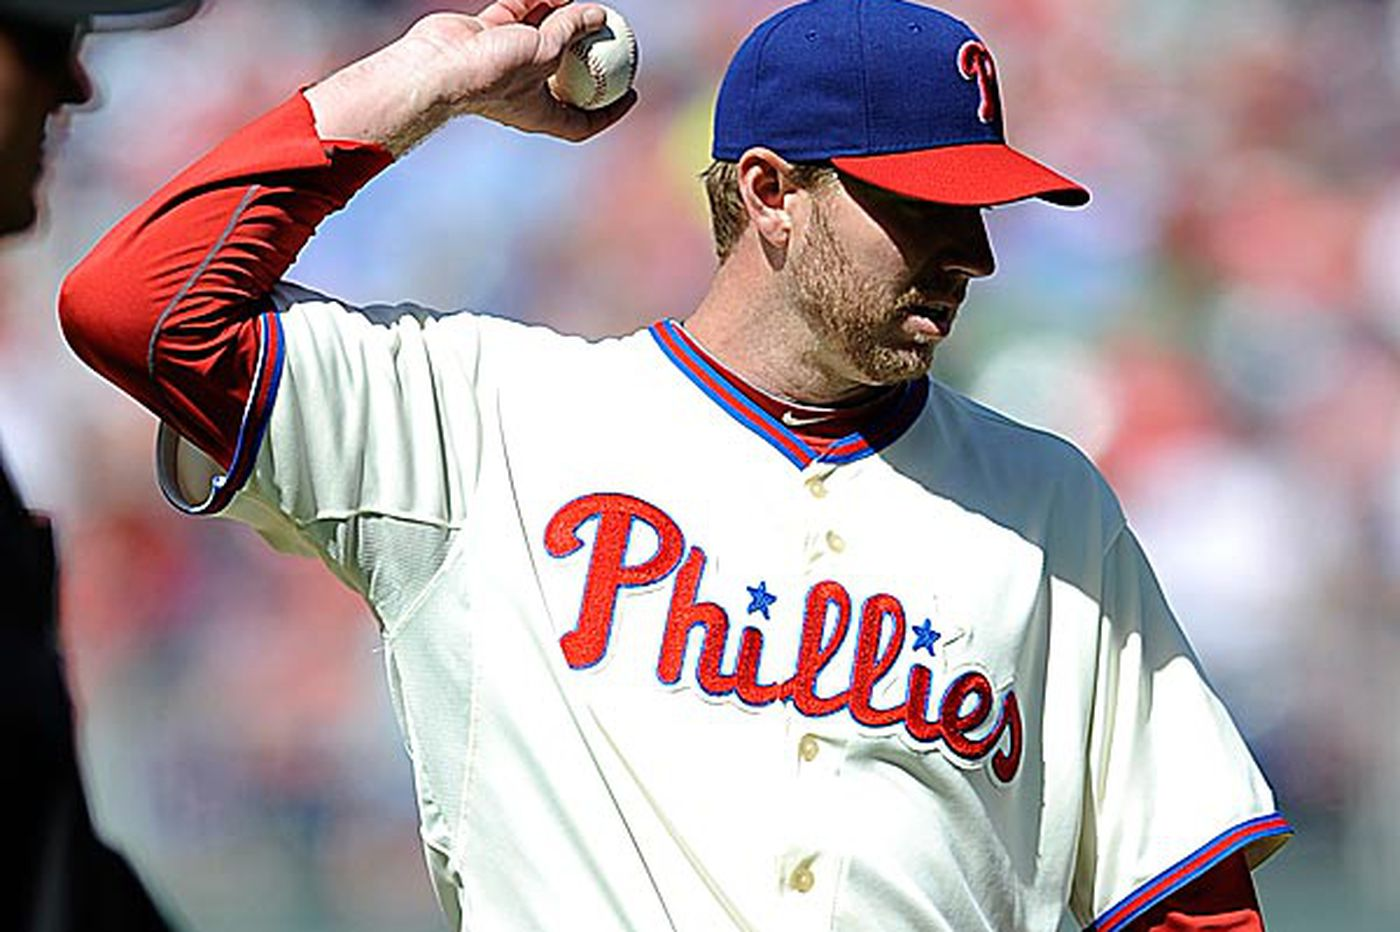 Roy Halladay lands on DL, heads to LA to find out what's wrong